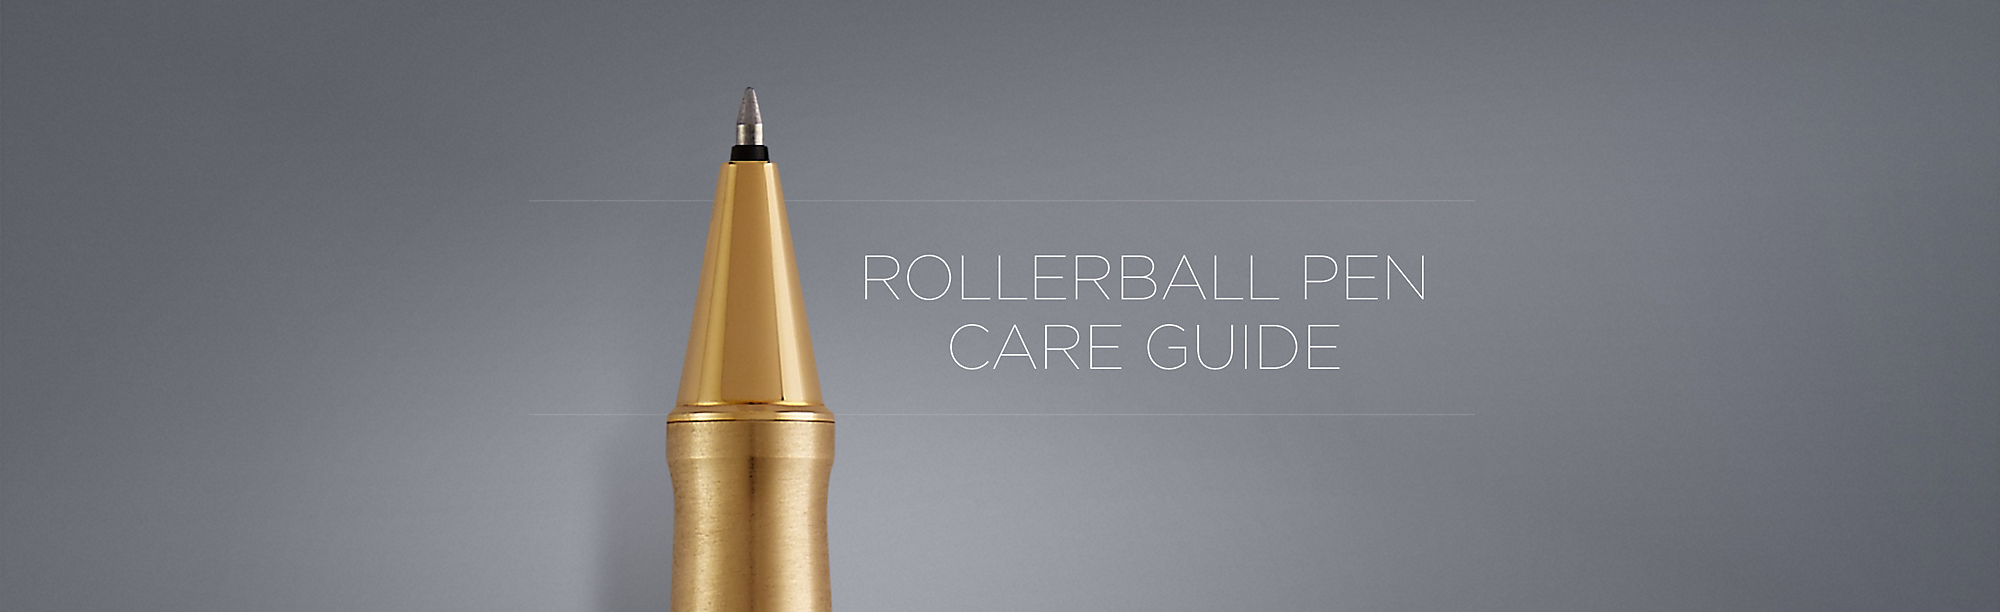 RollerBall Pen Care Guide